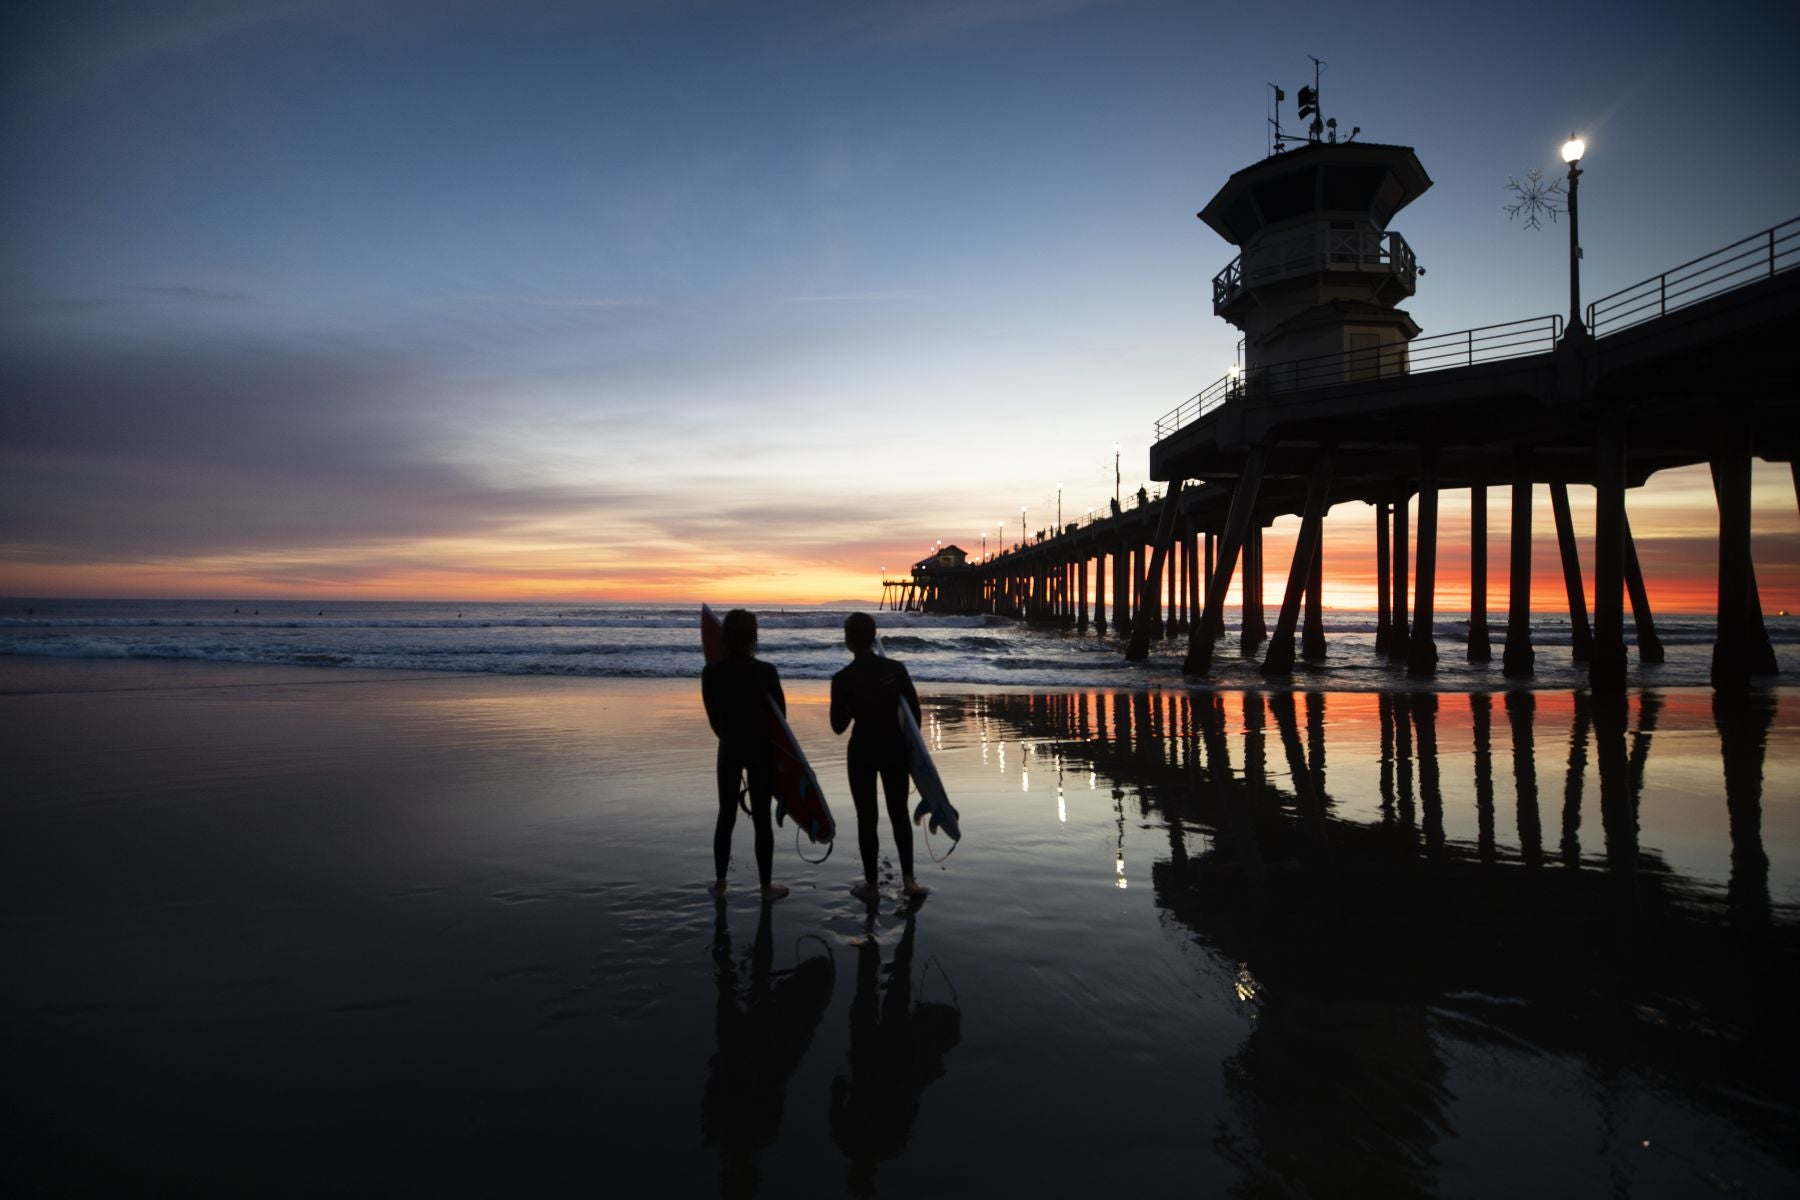 Silhouettes Of Surfers At Huntington Beach Pier At Sunset California Photo Printing Pros